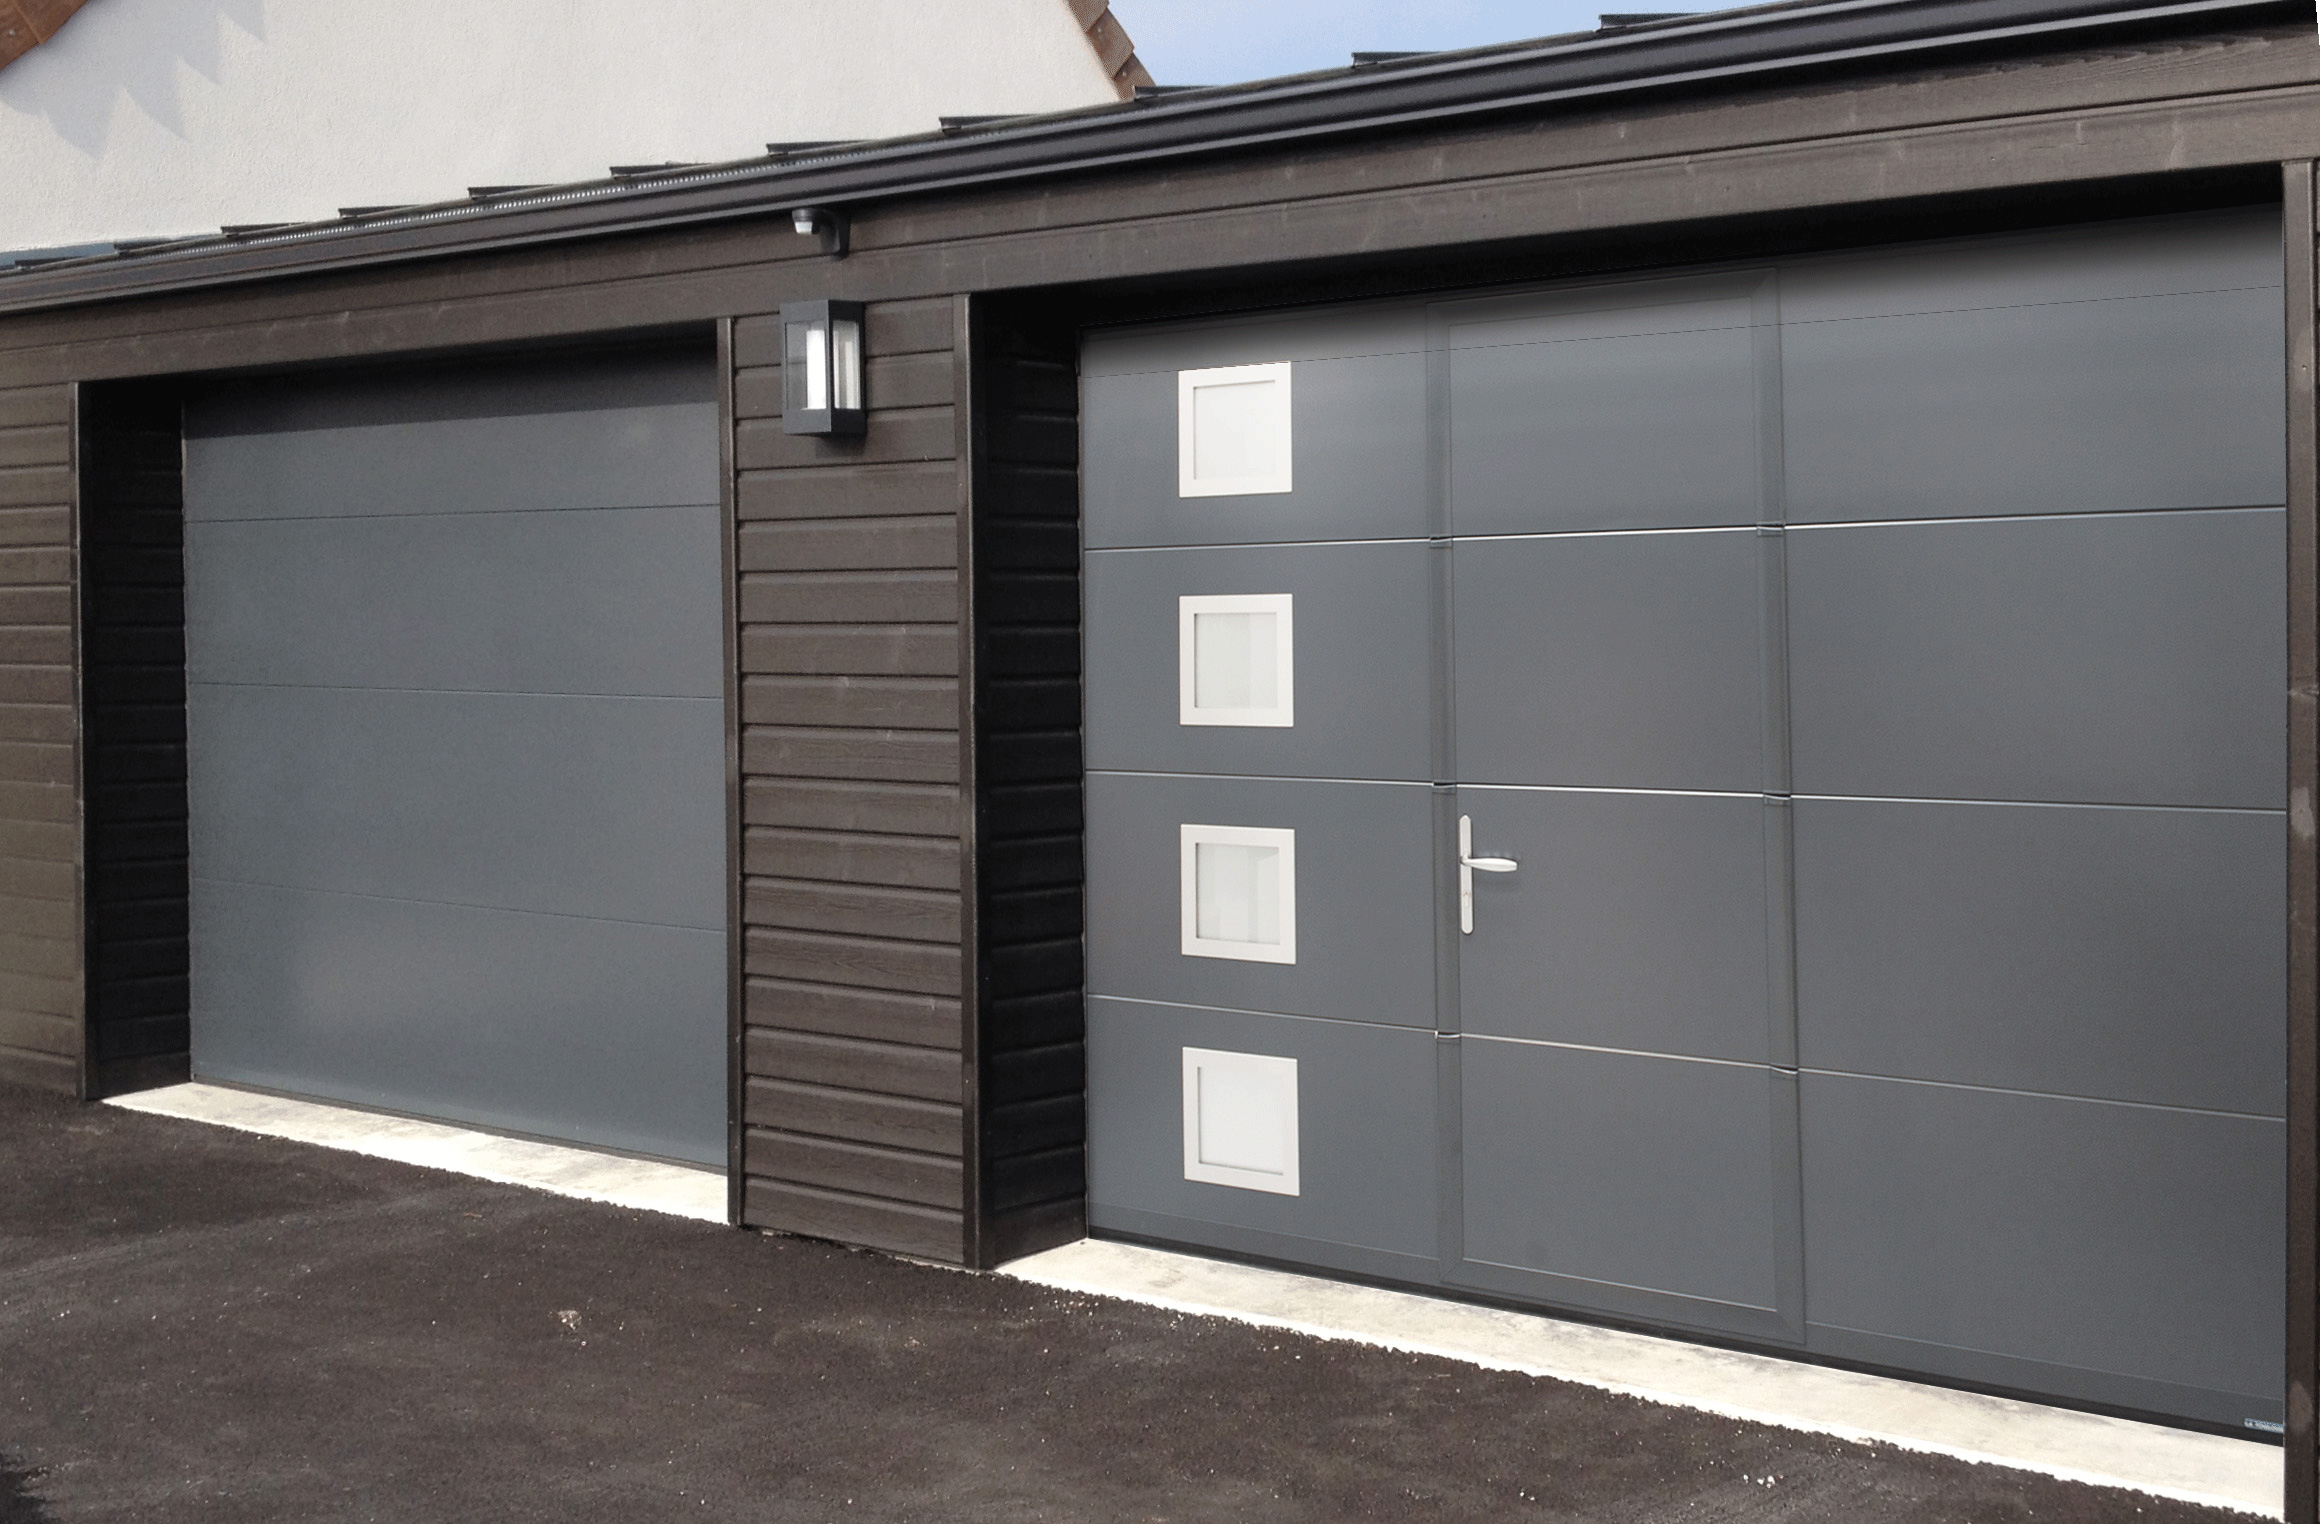 Securite porte de garage for Weigerding porte de garage